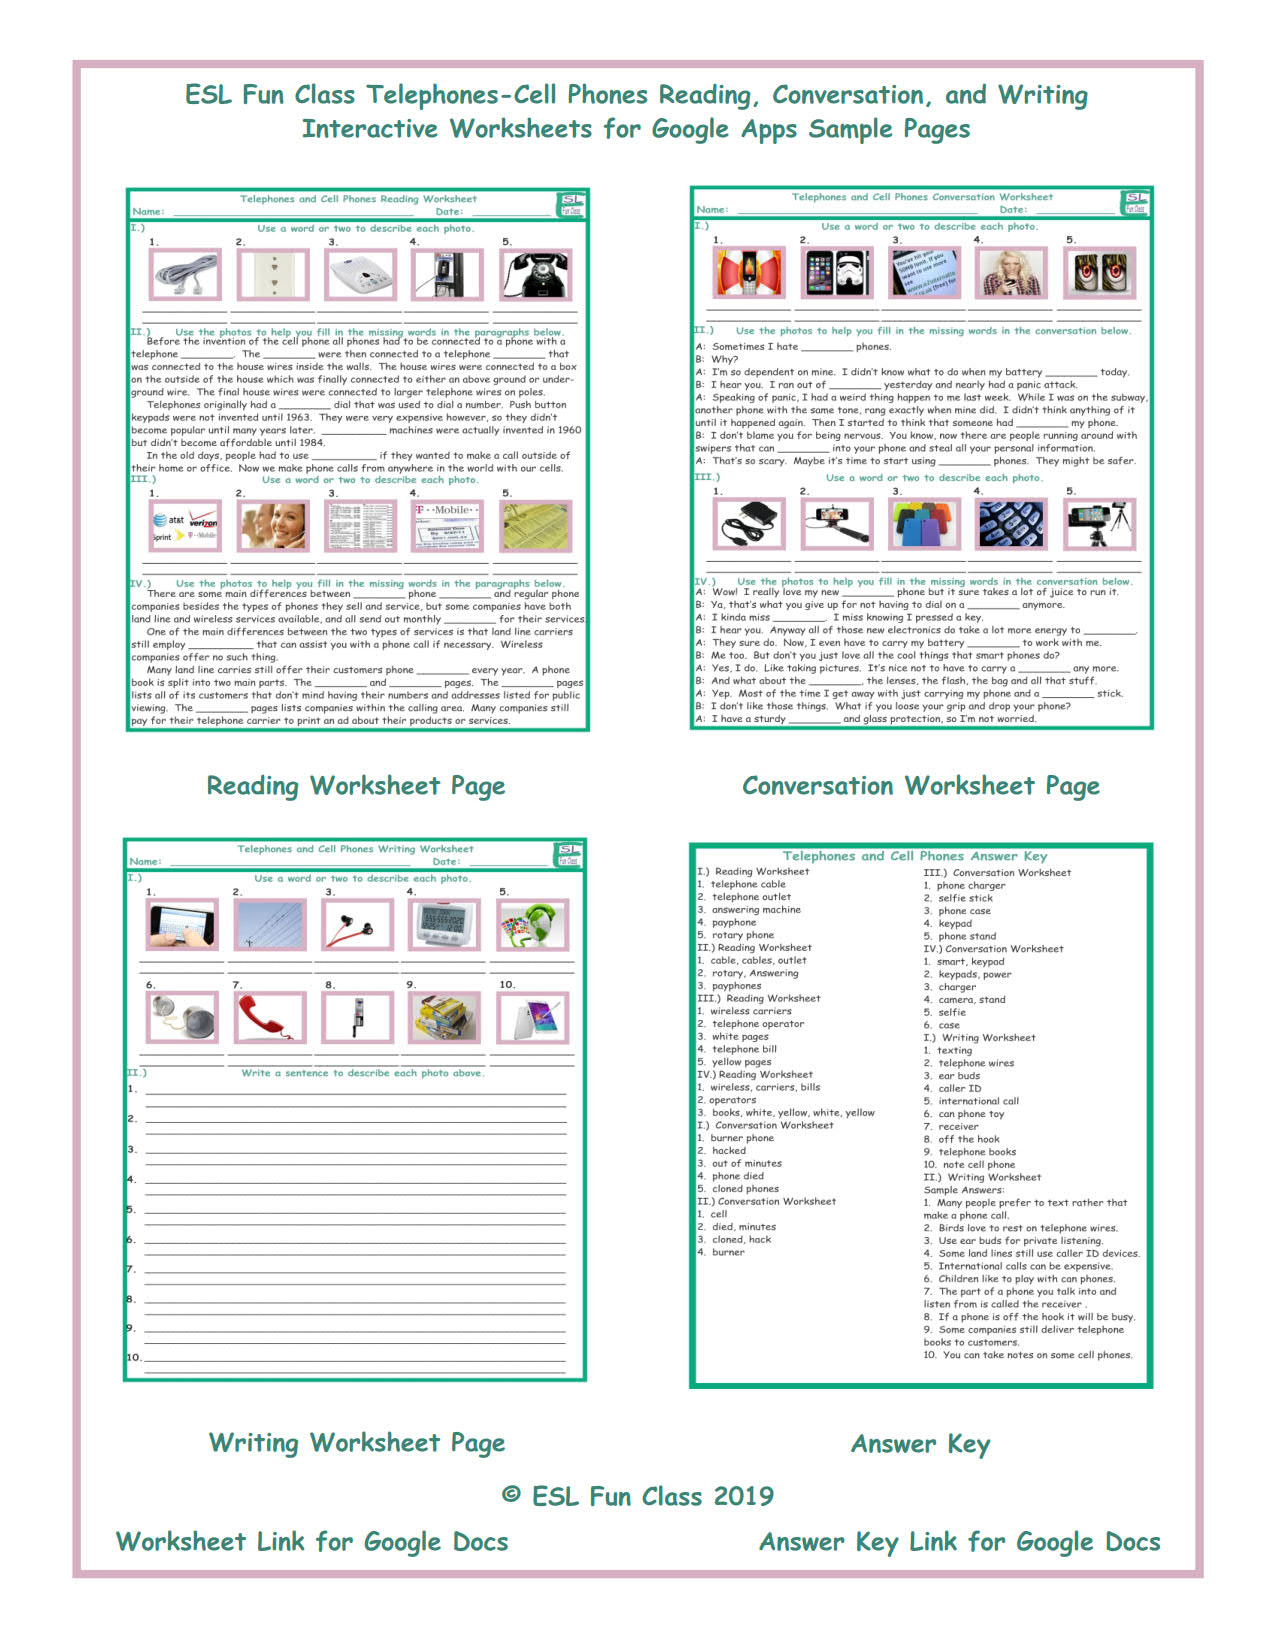 - Telephones-Cell Phones Read-Converse-Write Interactive Worksheets